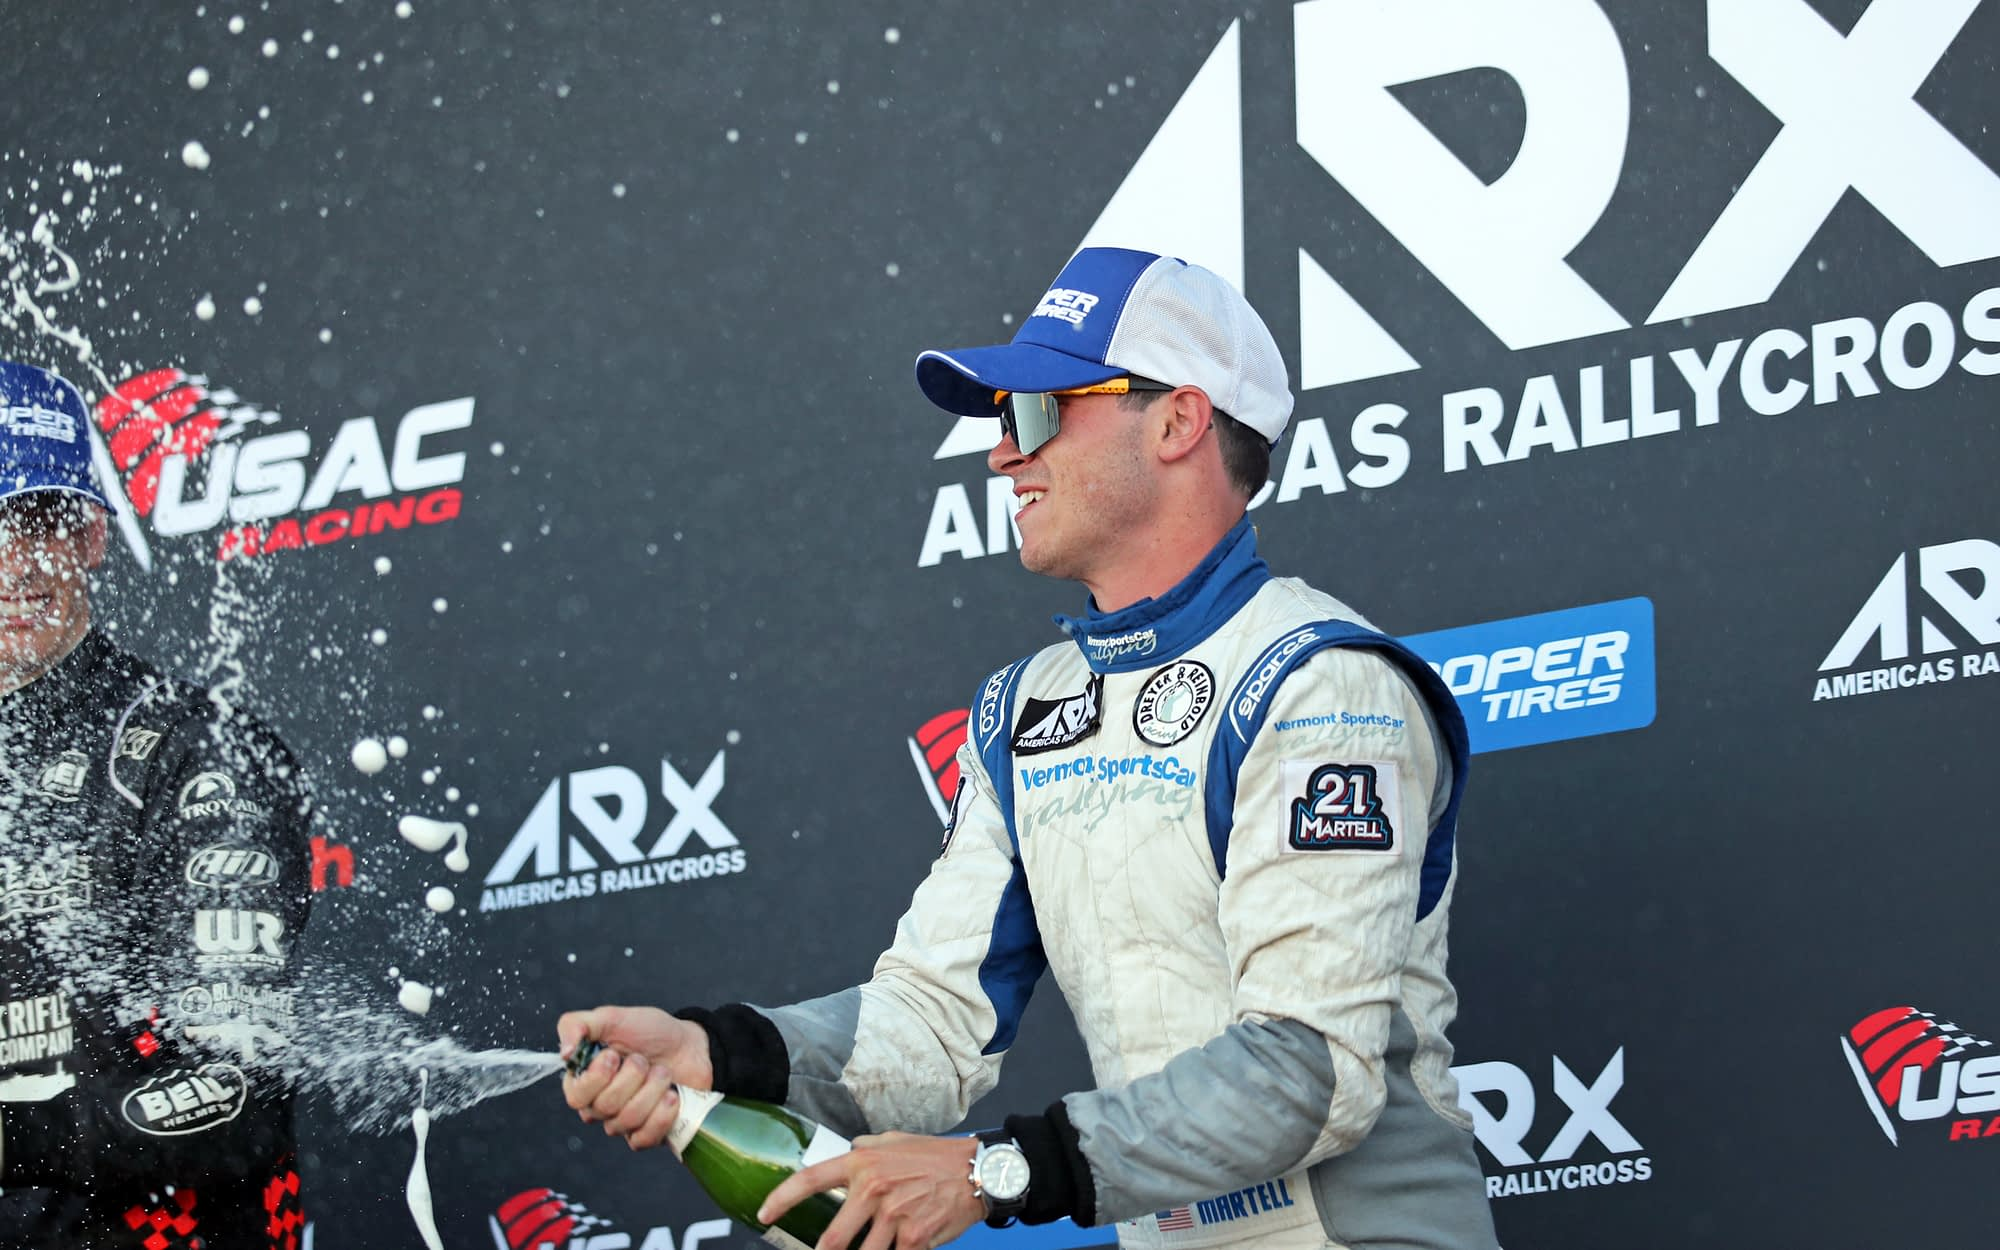 Conner Martell Wins at ARX